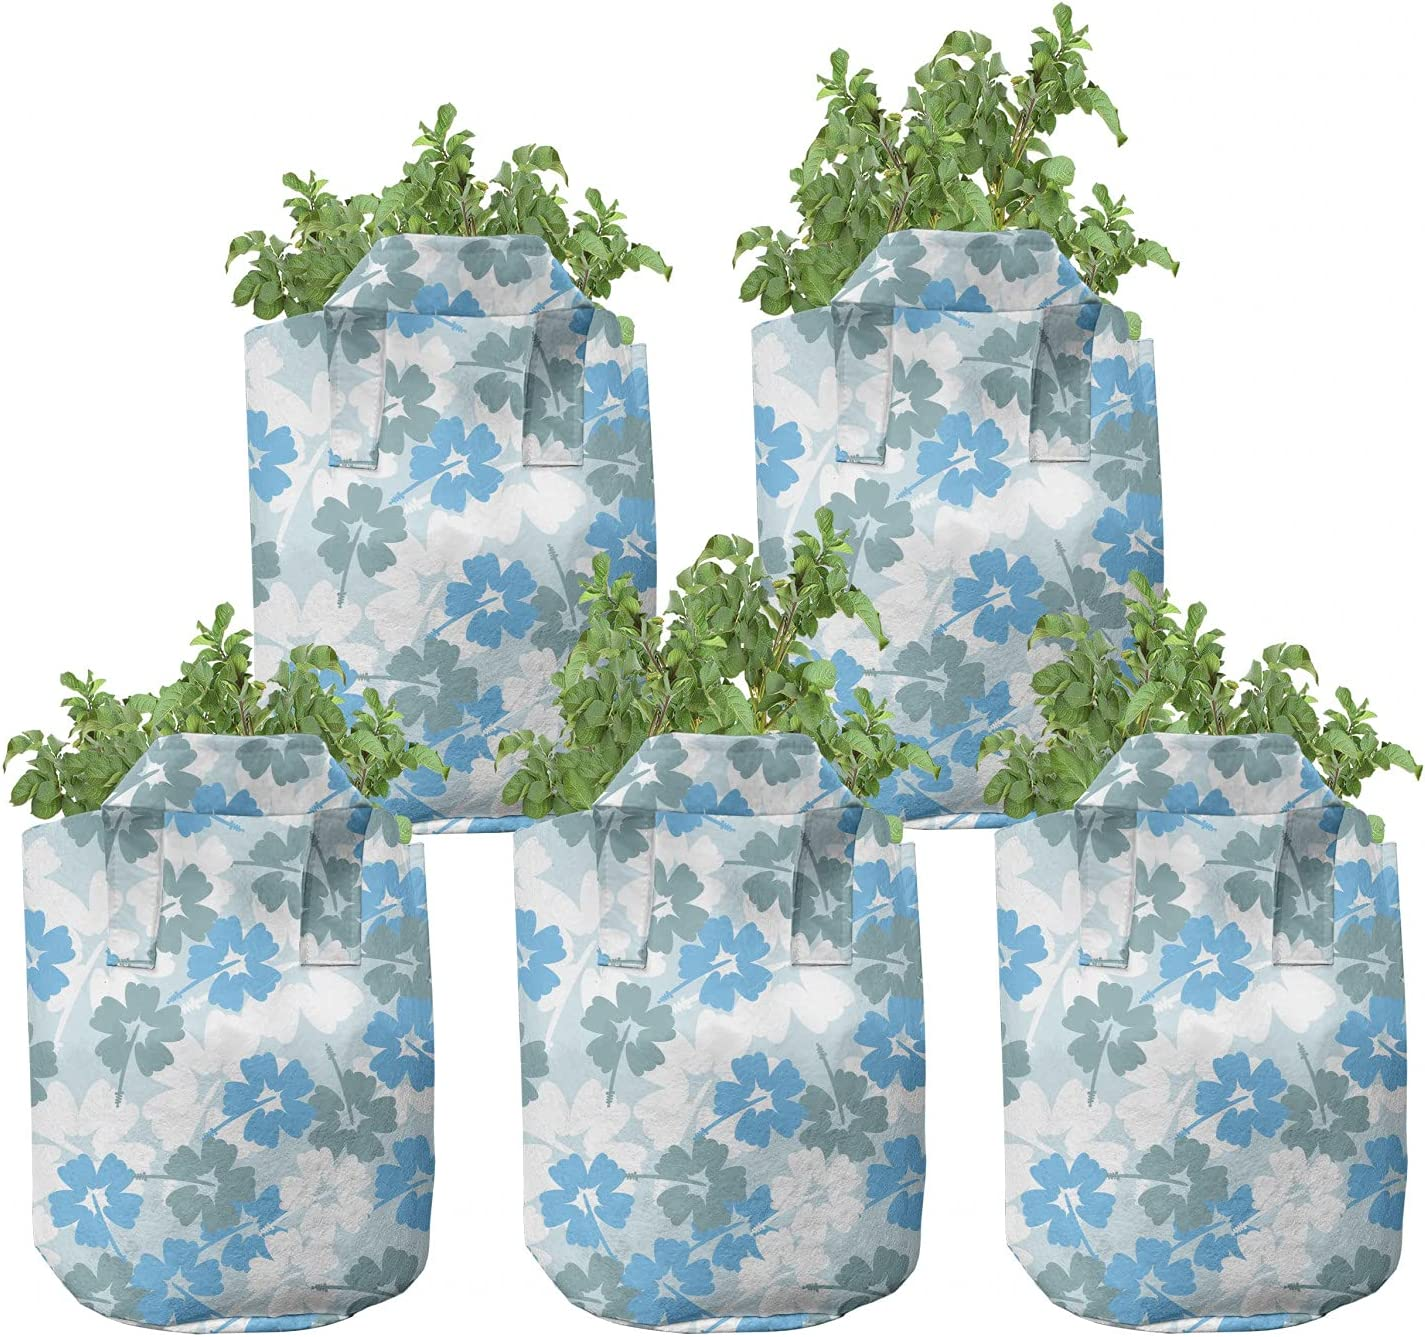 Max 42% OFF Ambesonne Floral Grow Bags 5-Pack H Blue Superlatite Vibes Blossoms Spring